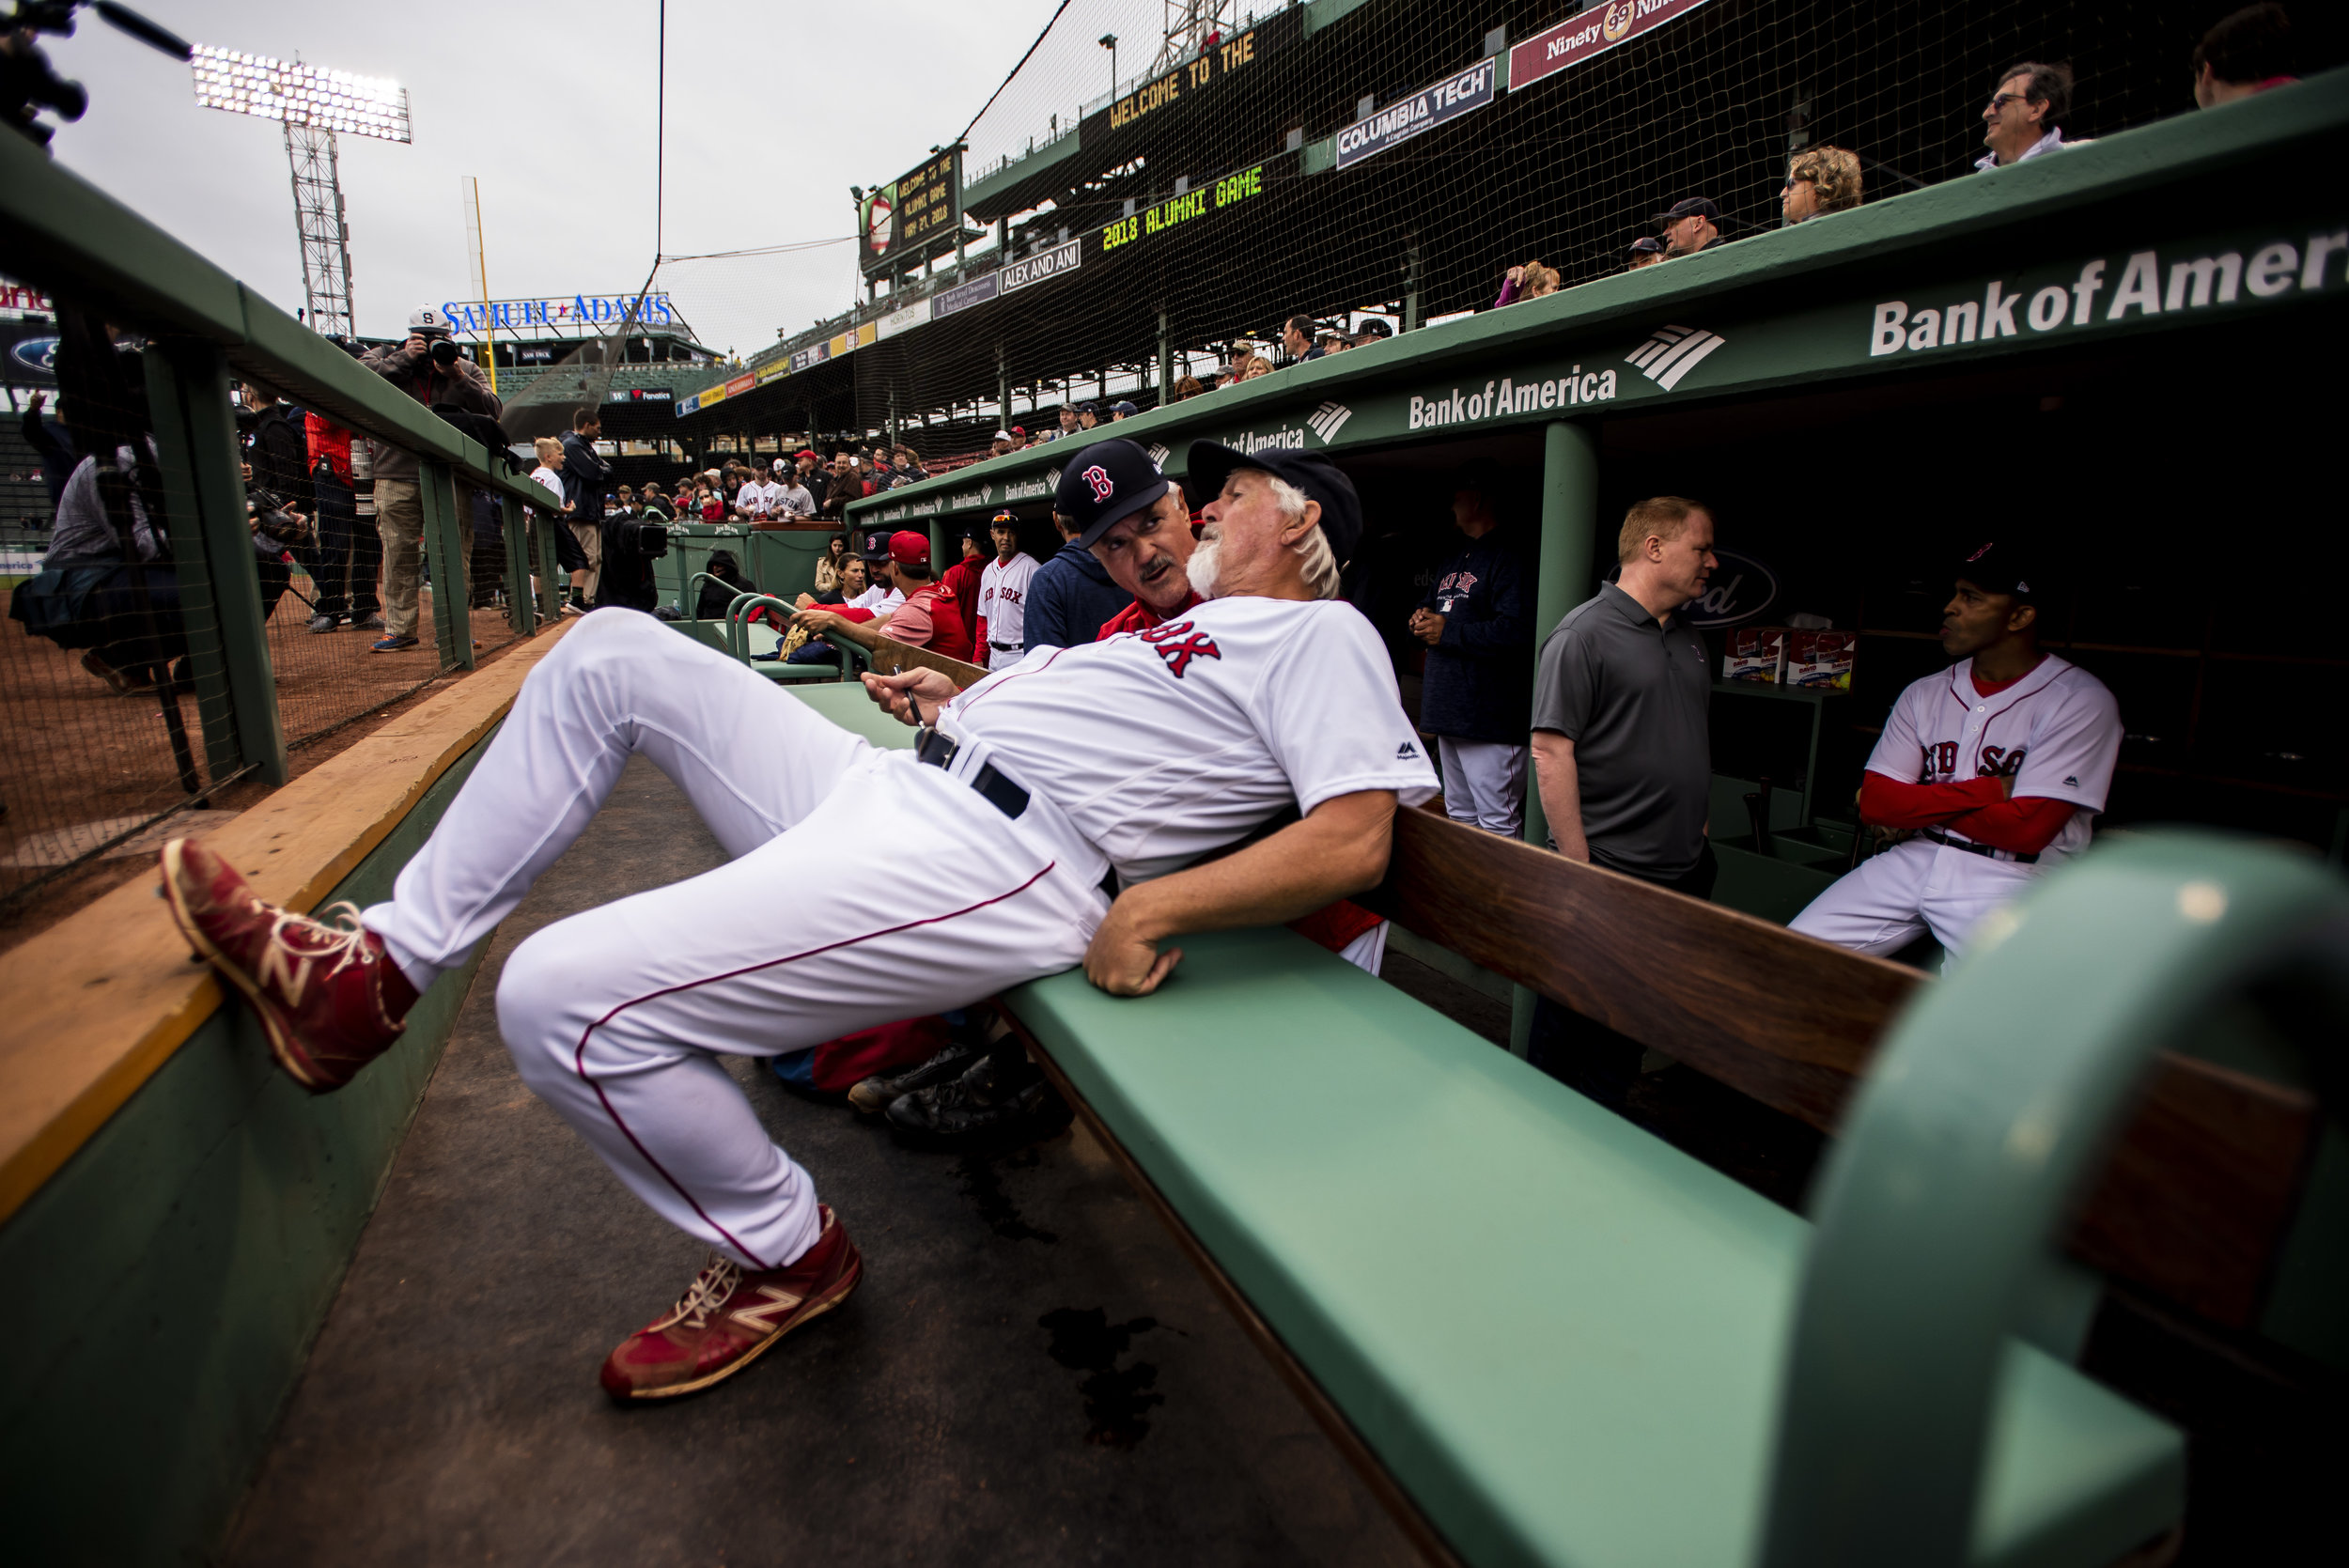 May 27, 2018, Boston, MA: Former Red Sox Spaceman Bill Lee stretches out in the dugout before the Red Sox Alumni Game at Fenway Park in Boston, Massachusetts on Sunday, May 27, 2018. (Photo by Matthew Thomas/Boston Red Sox)